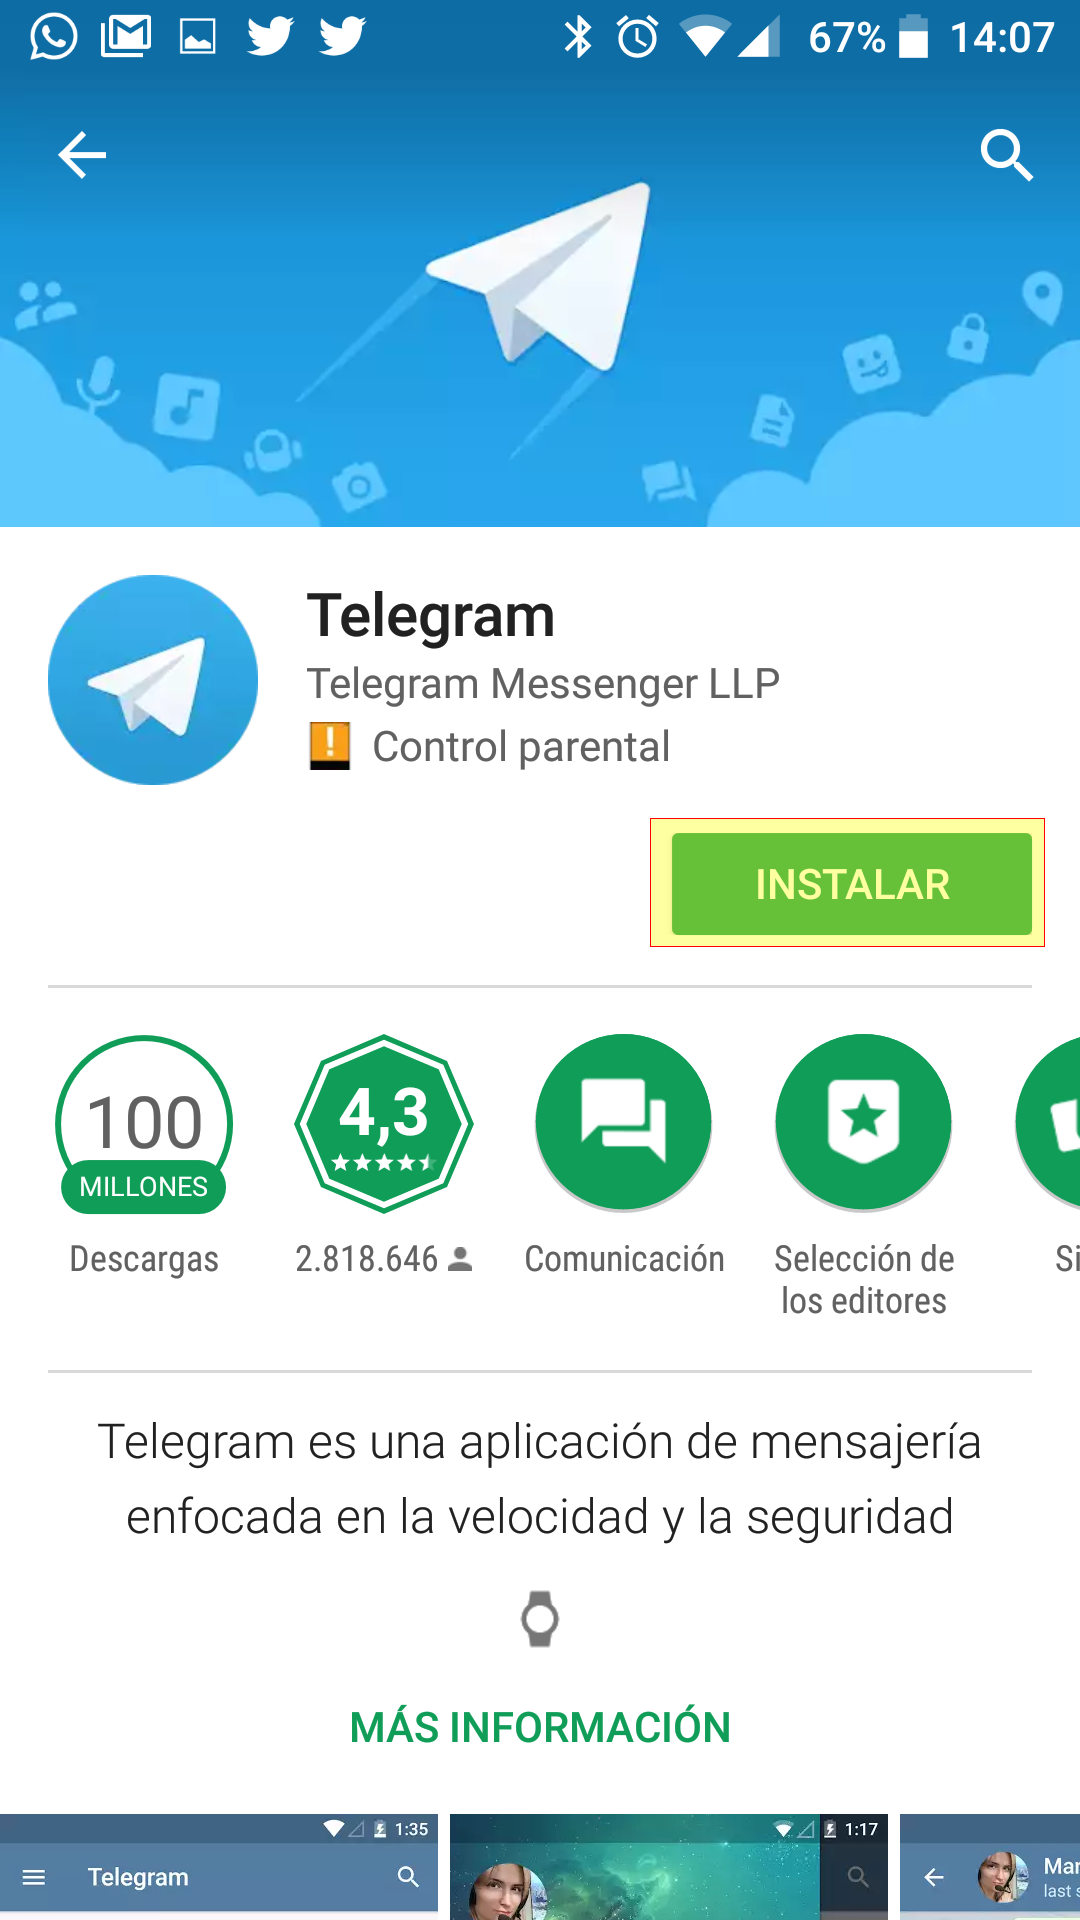 telegram_01.png